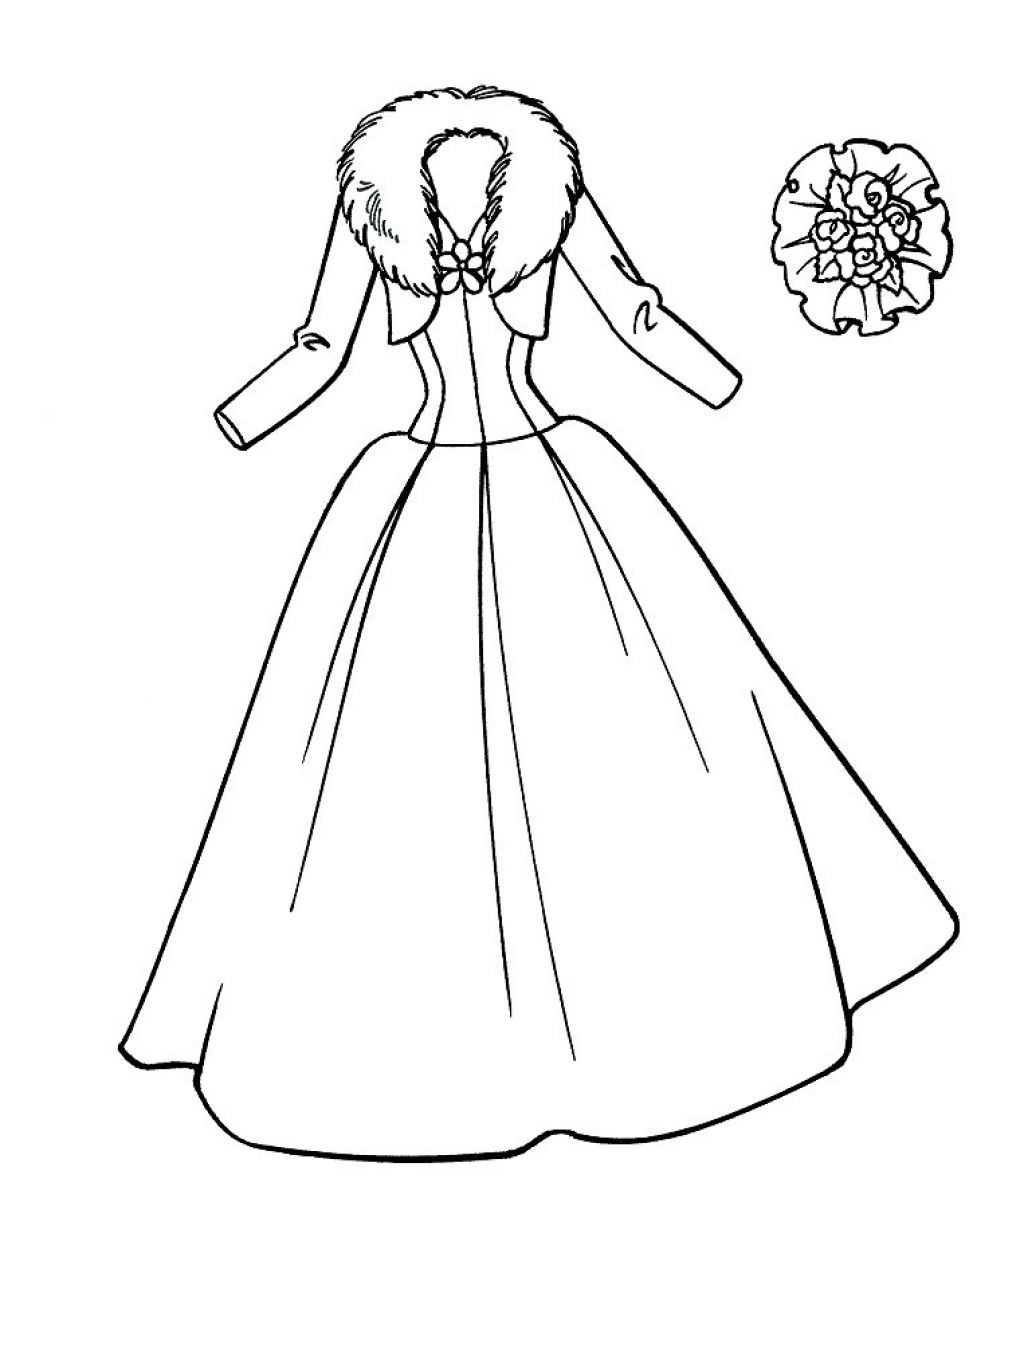 Coloring Sheets For Girls Princess Dresses  printable wedding dress coloring pages for girls